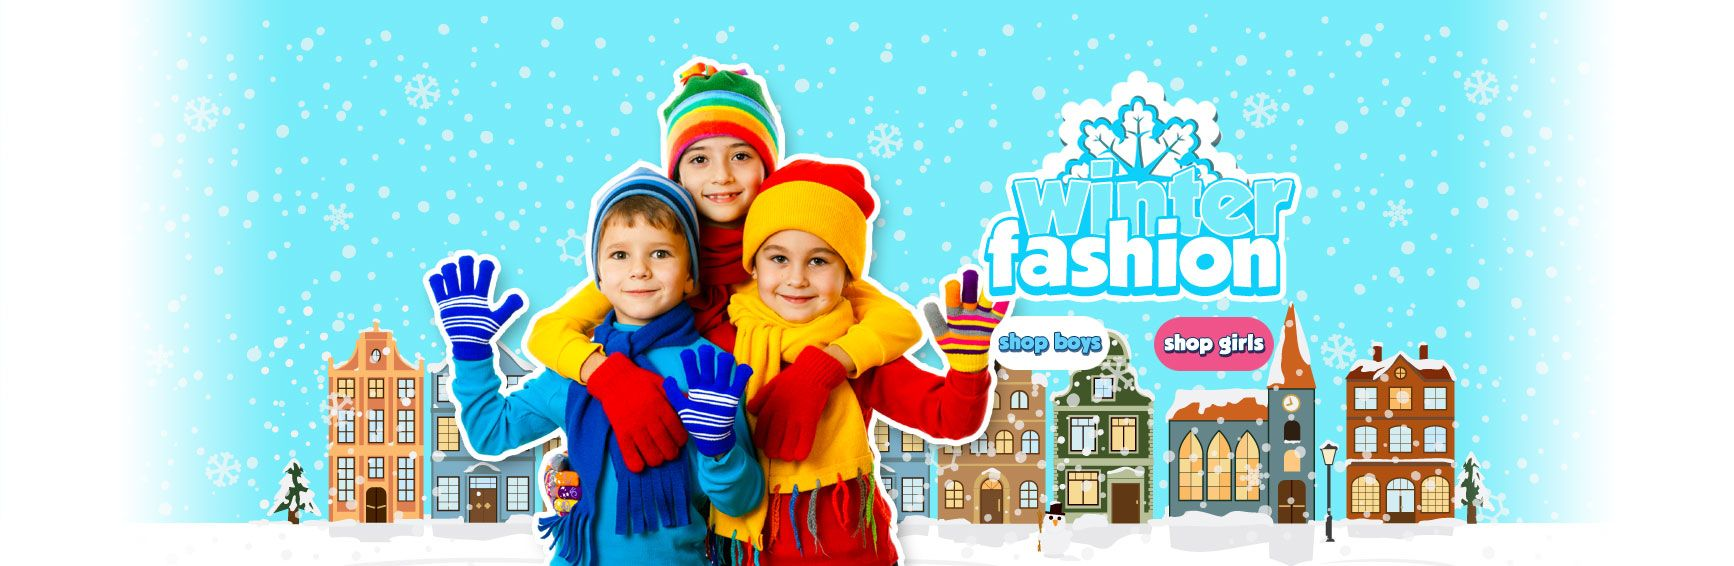 ceb1faf90e780 Final Winter Clearance Sale! Up to 90% off at CookiesKids! | Get FREE  Samples by Mail | Free Stuff